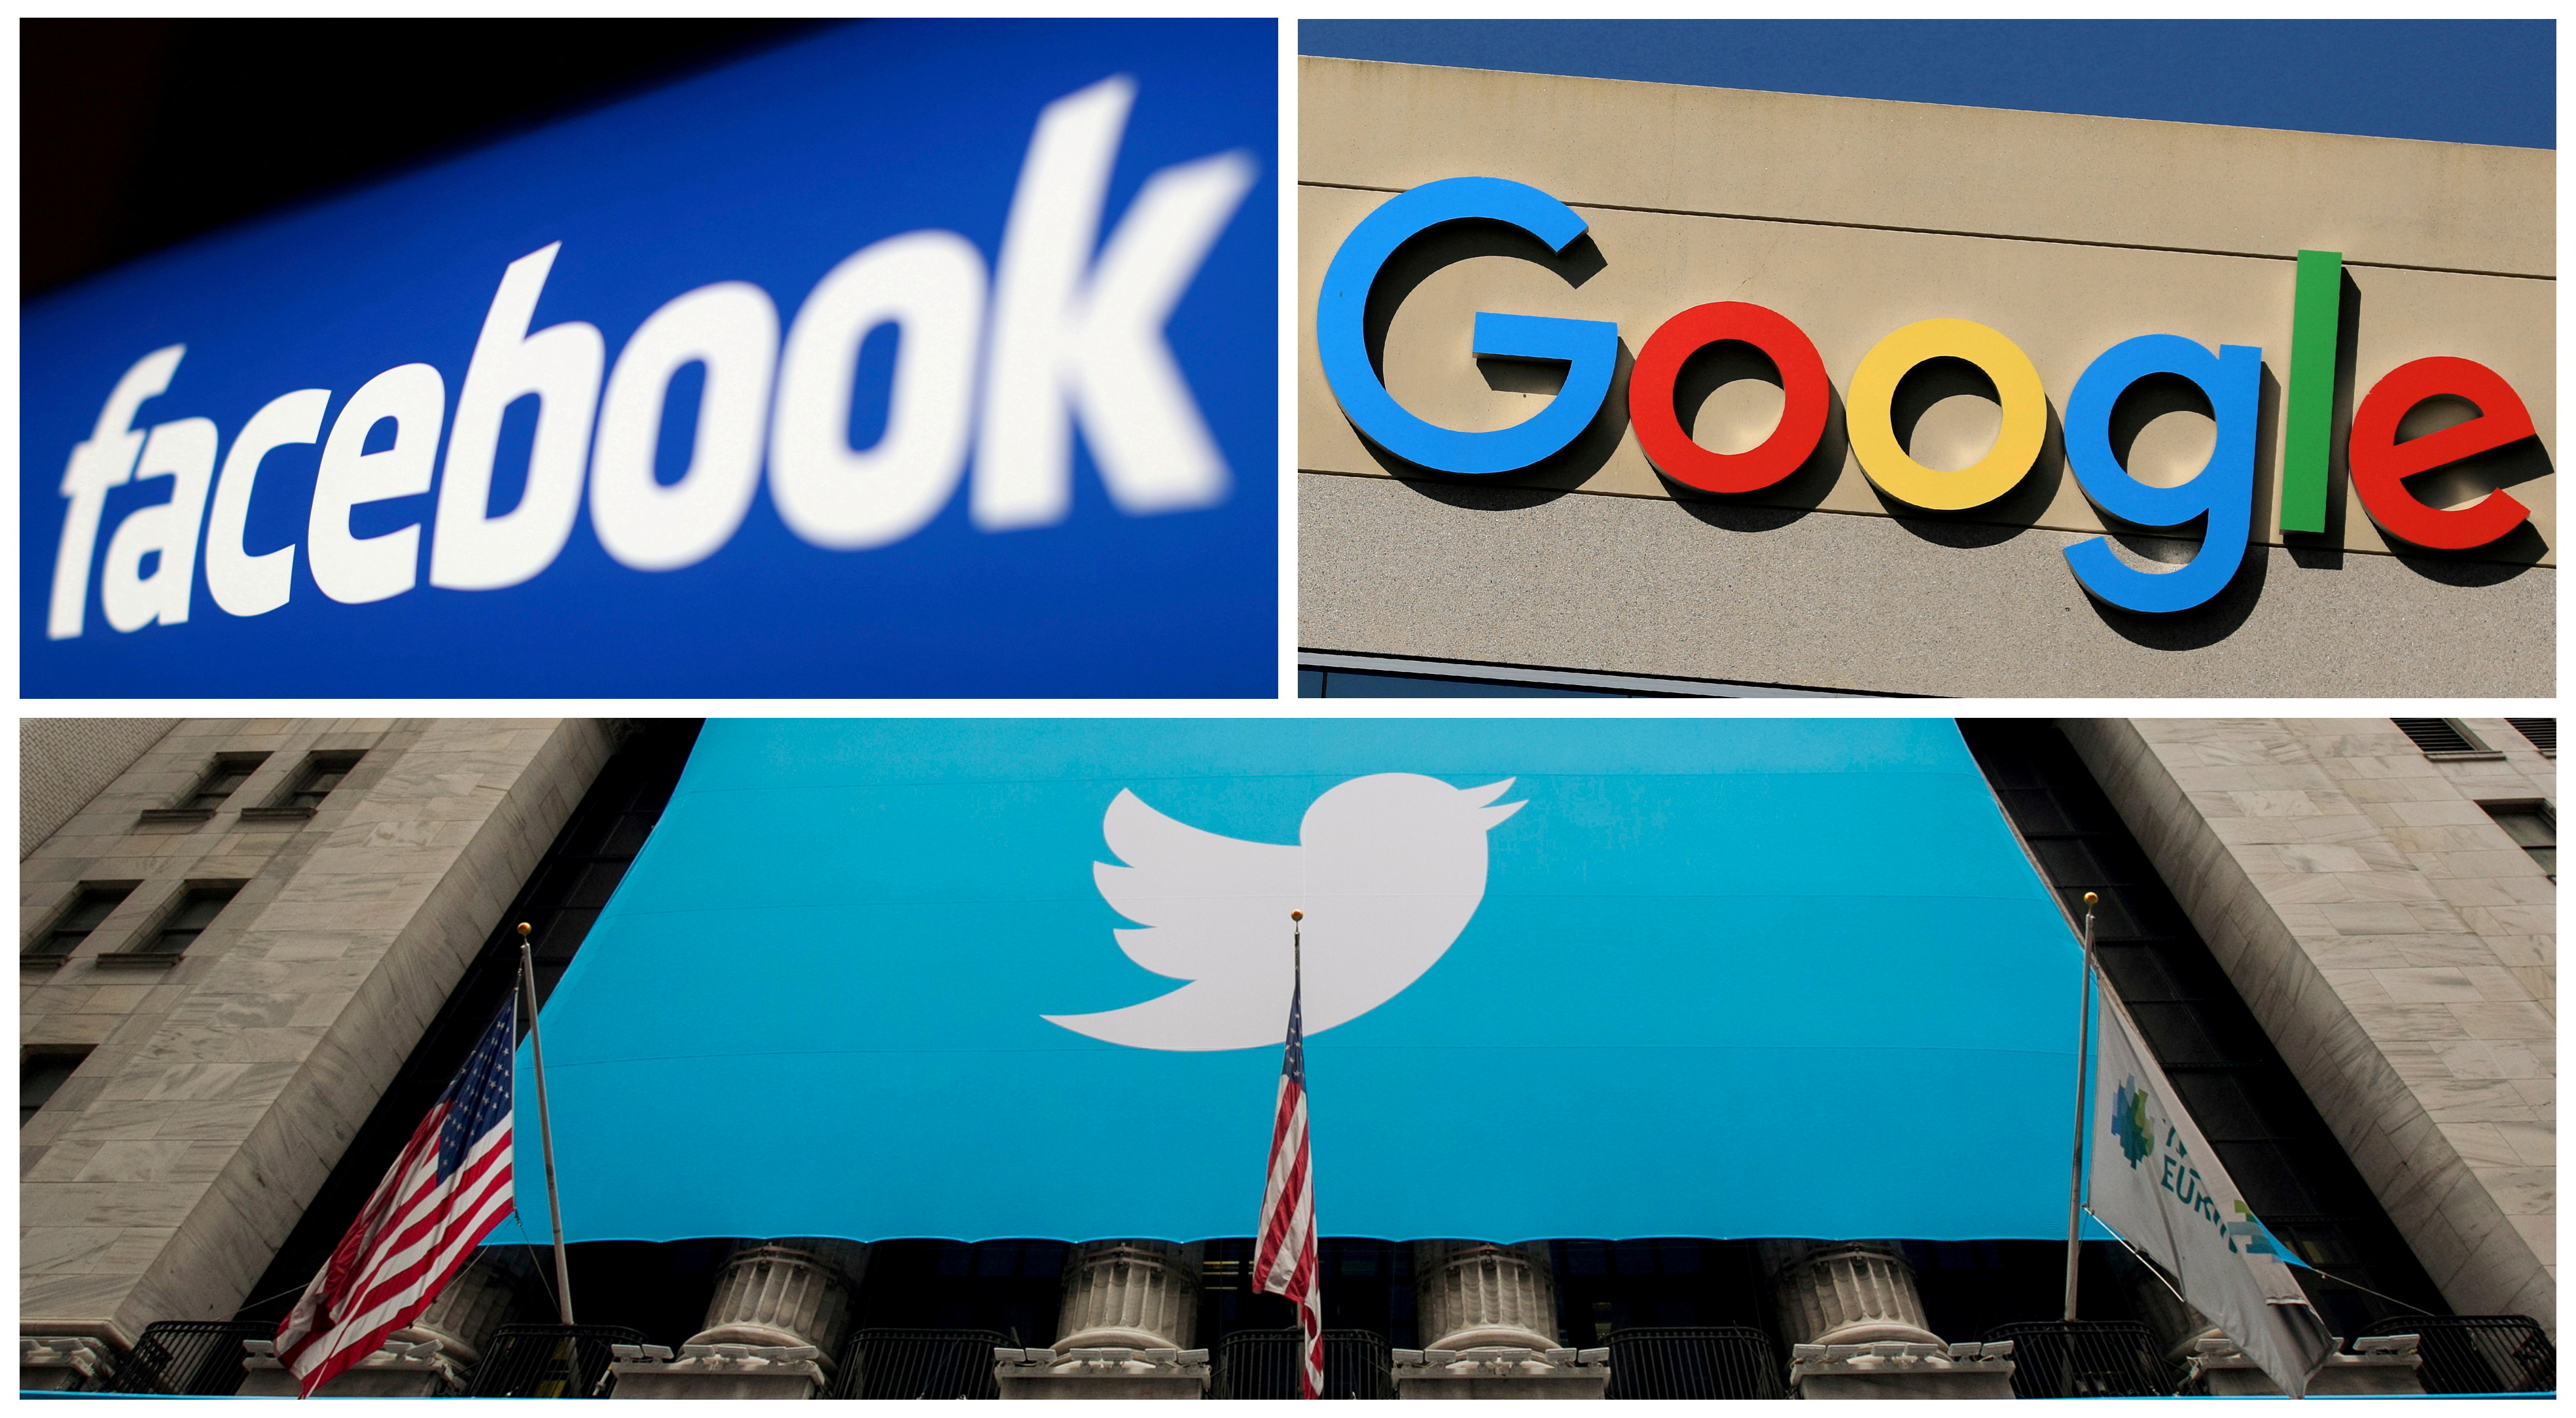 Facebook, Google and Twitter logos are seen in this combination photo from Reuters files. REUTERS